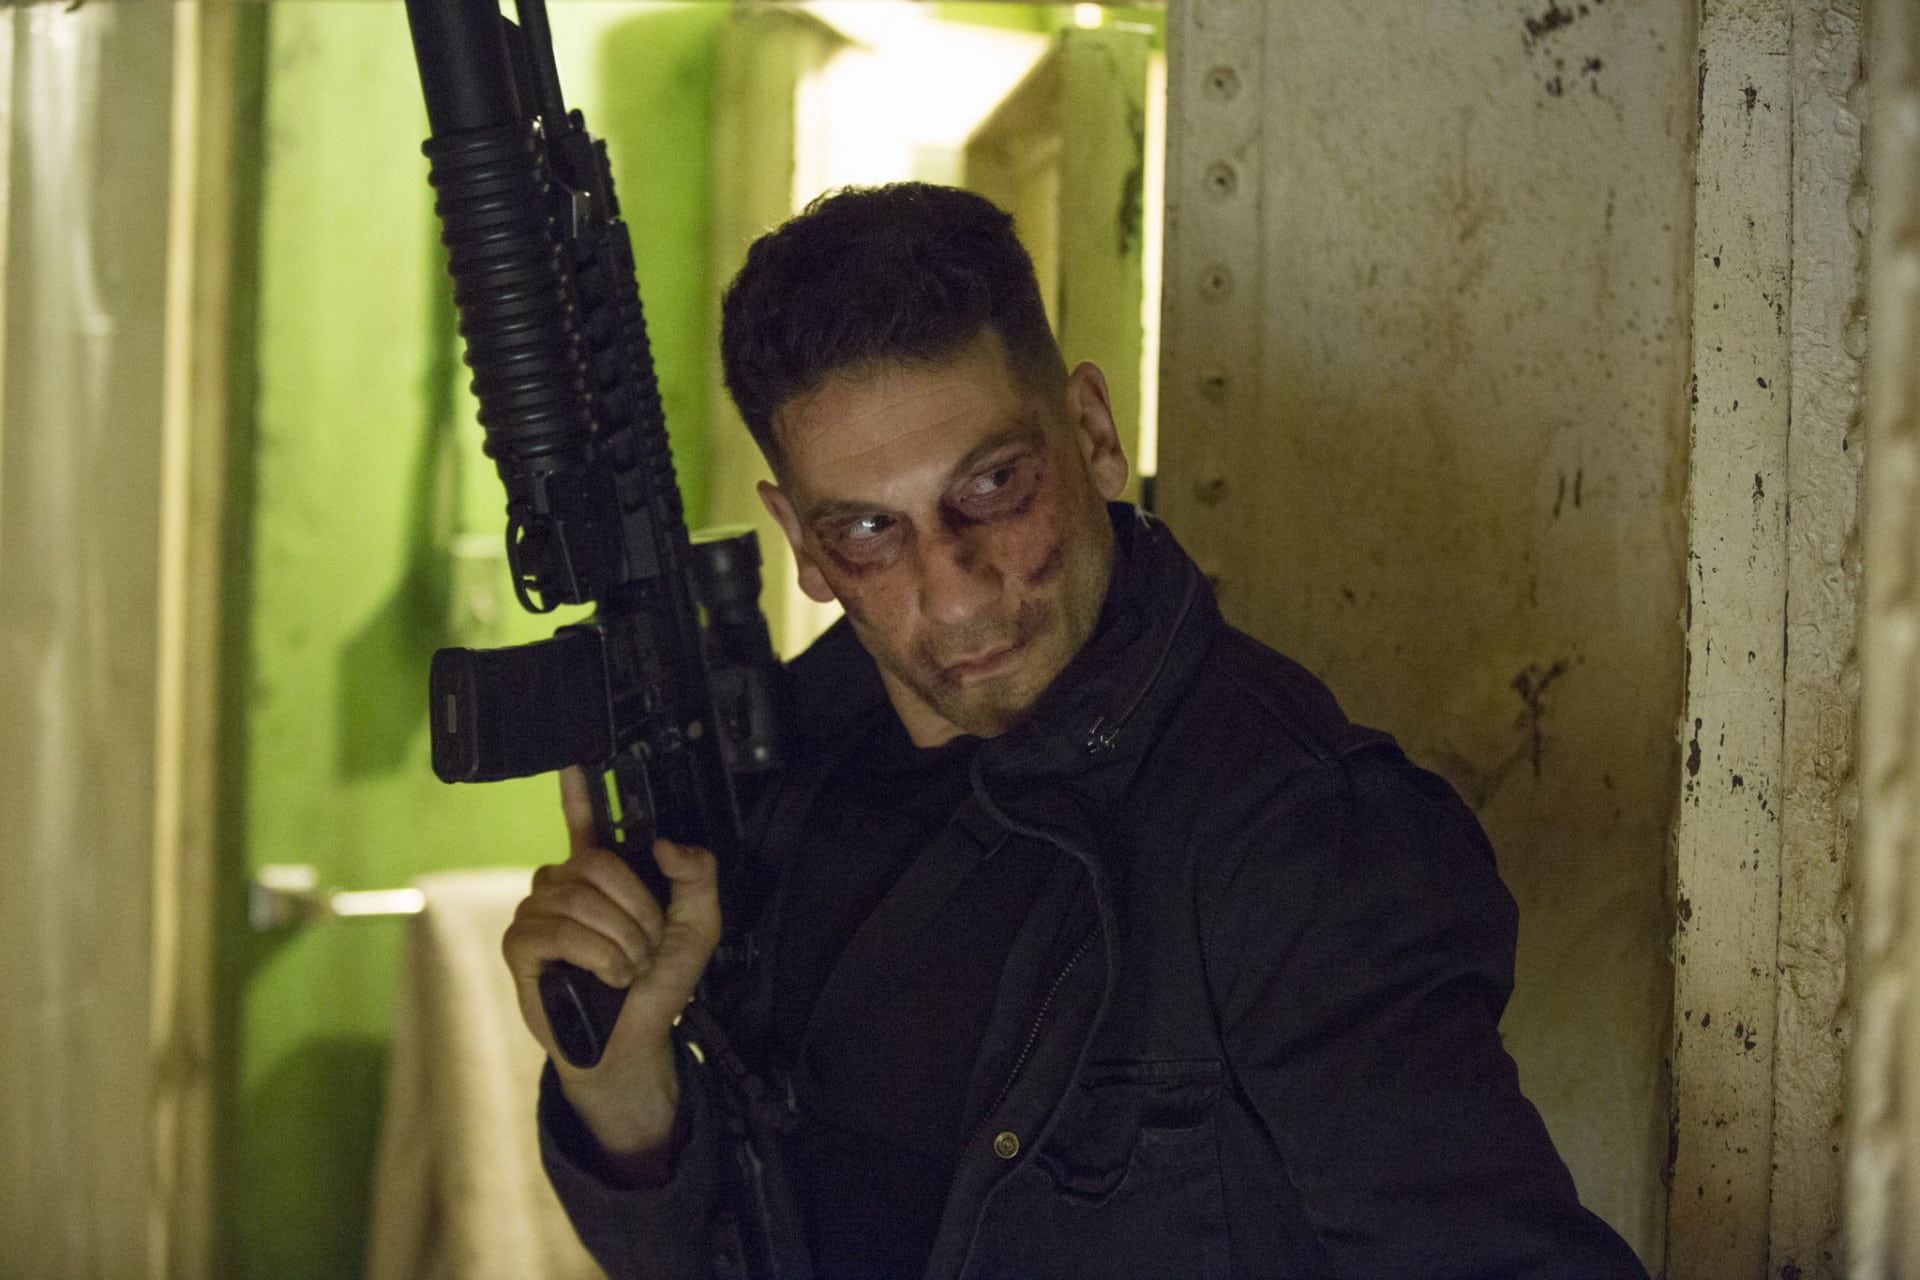 How Netflix Failed The Punisher and his uncomfortable violent origins in 1970s New York City